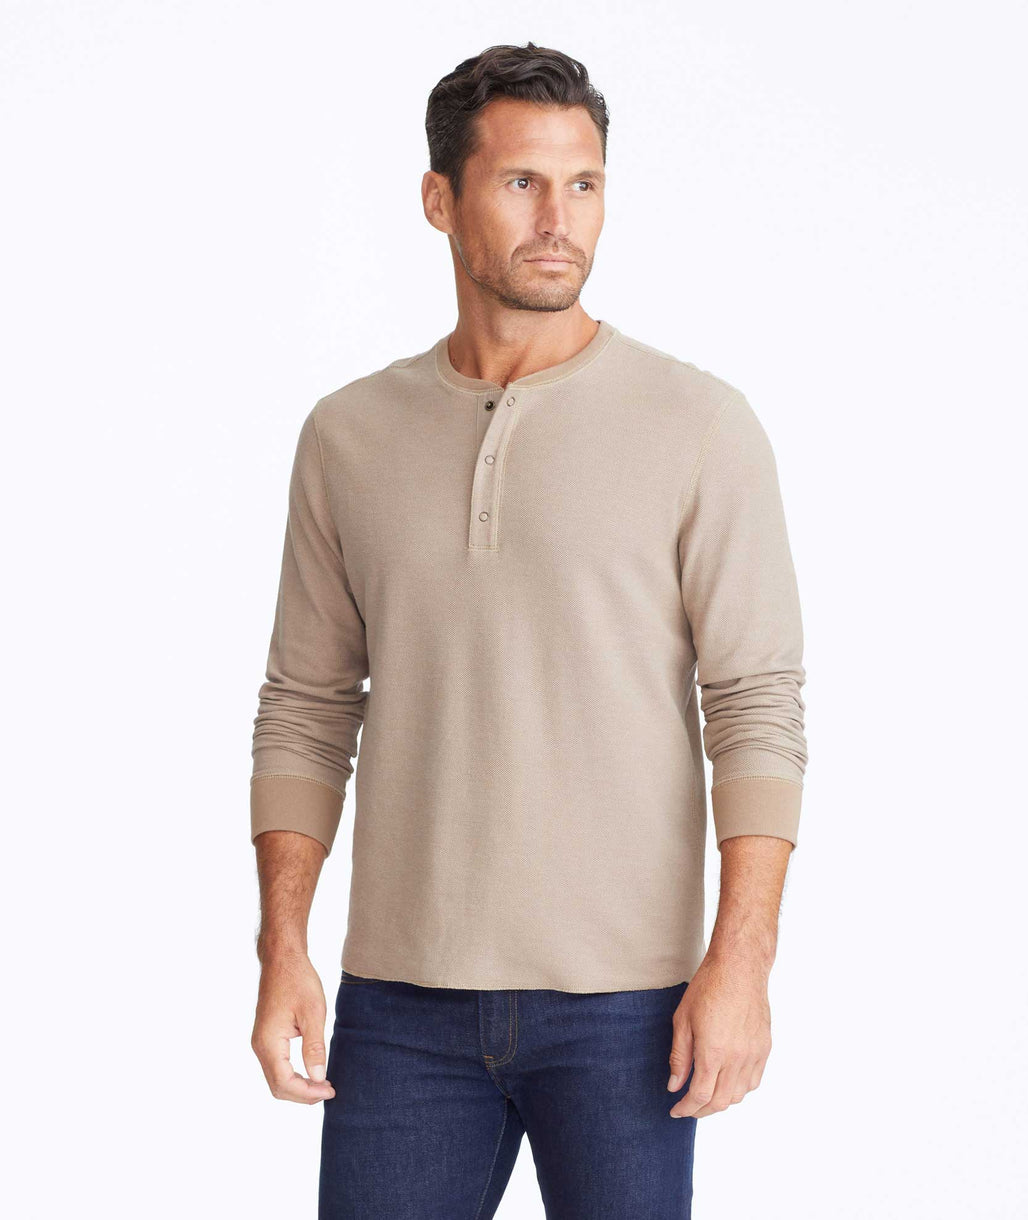 Model wearing a Tan Textured Long-Sleeve Henley